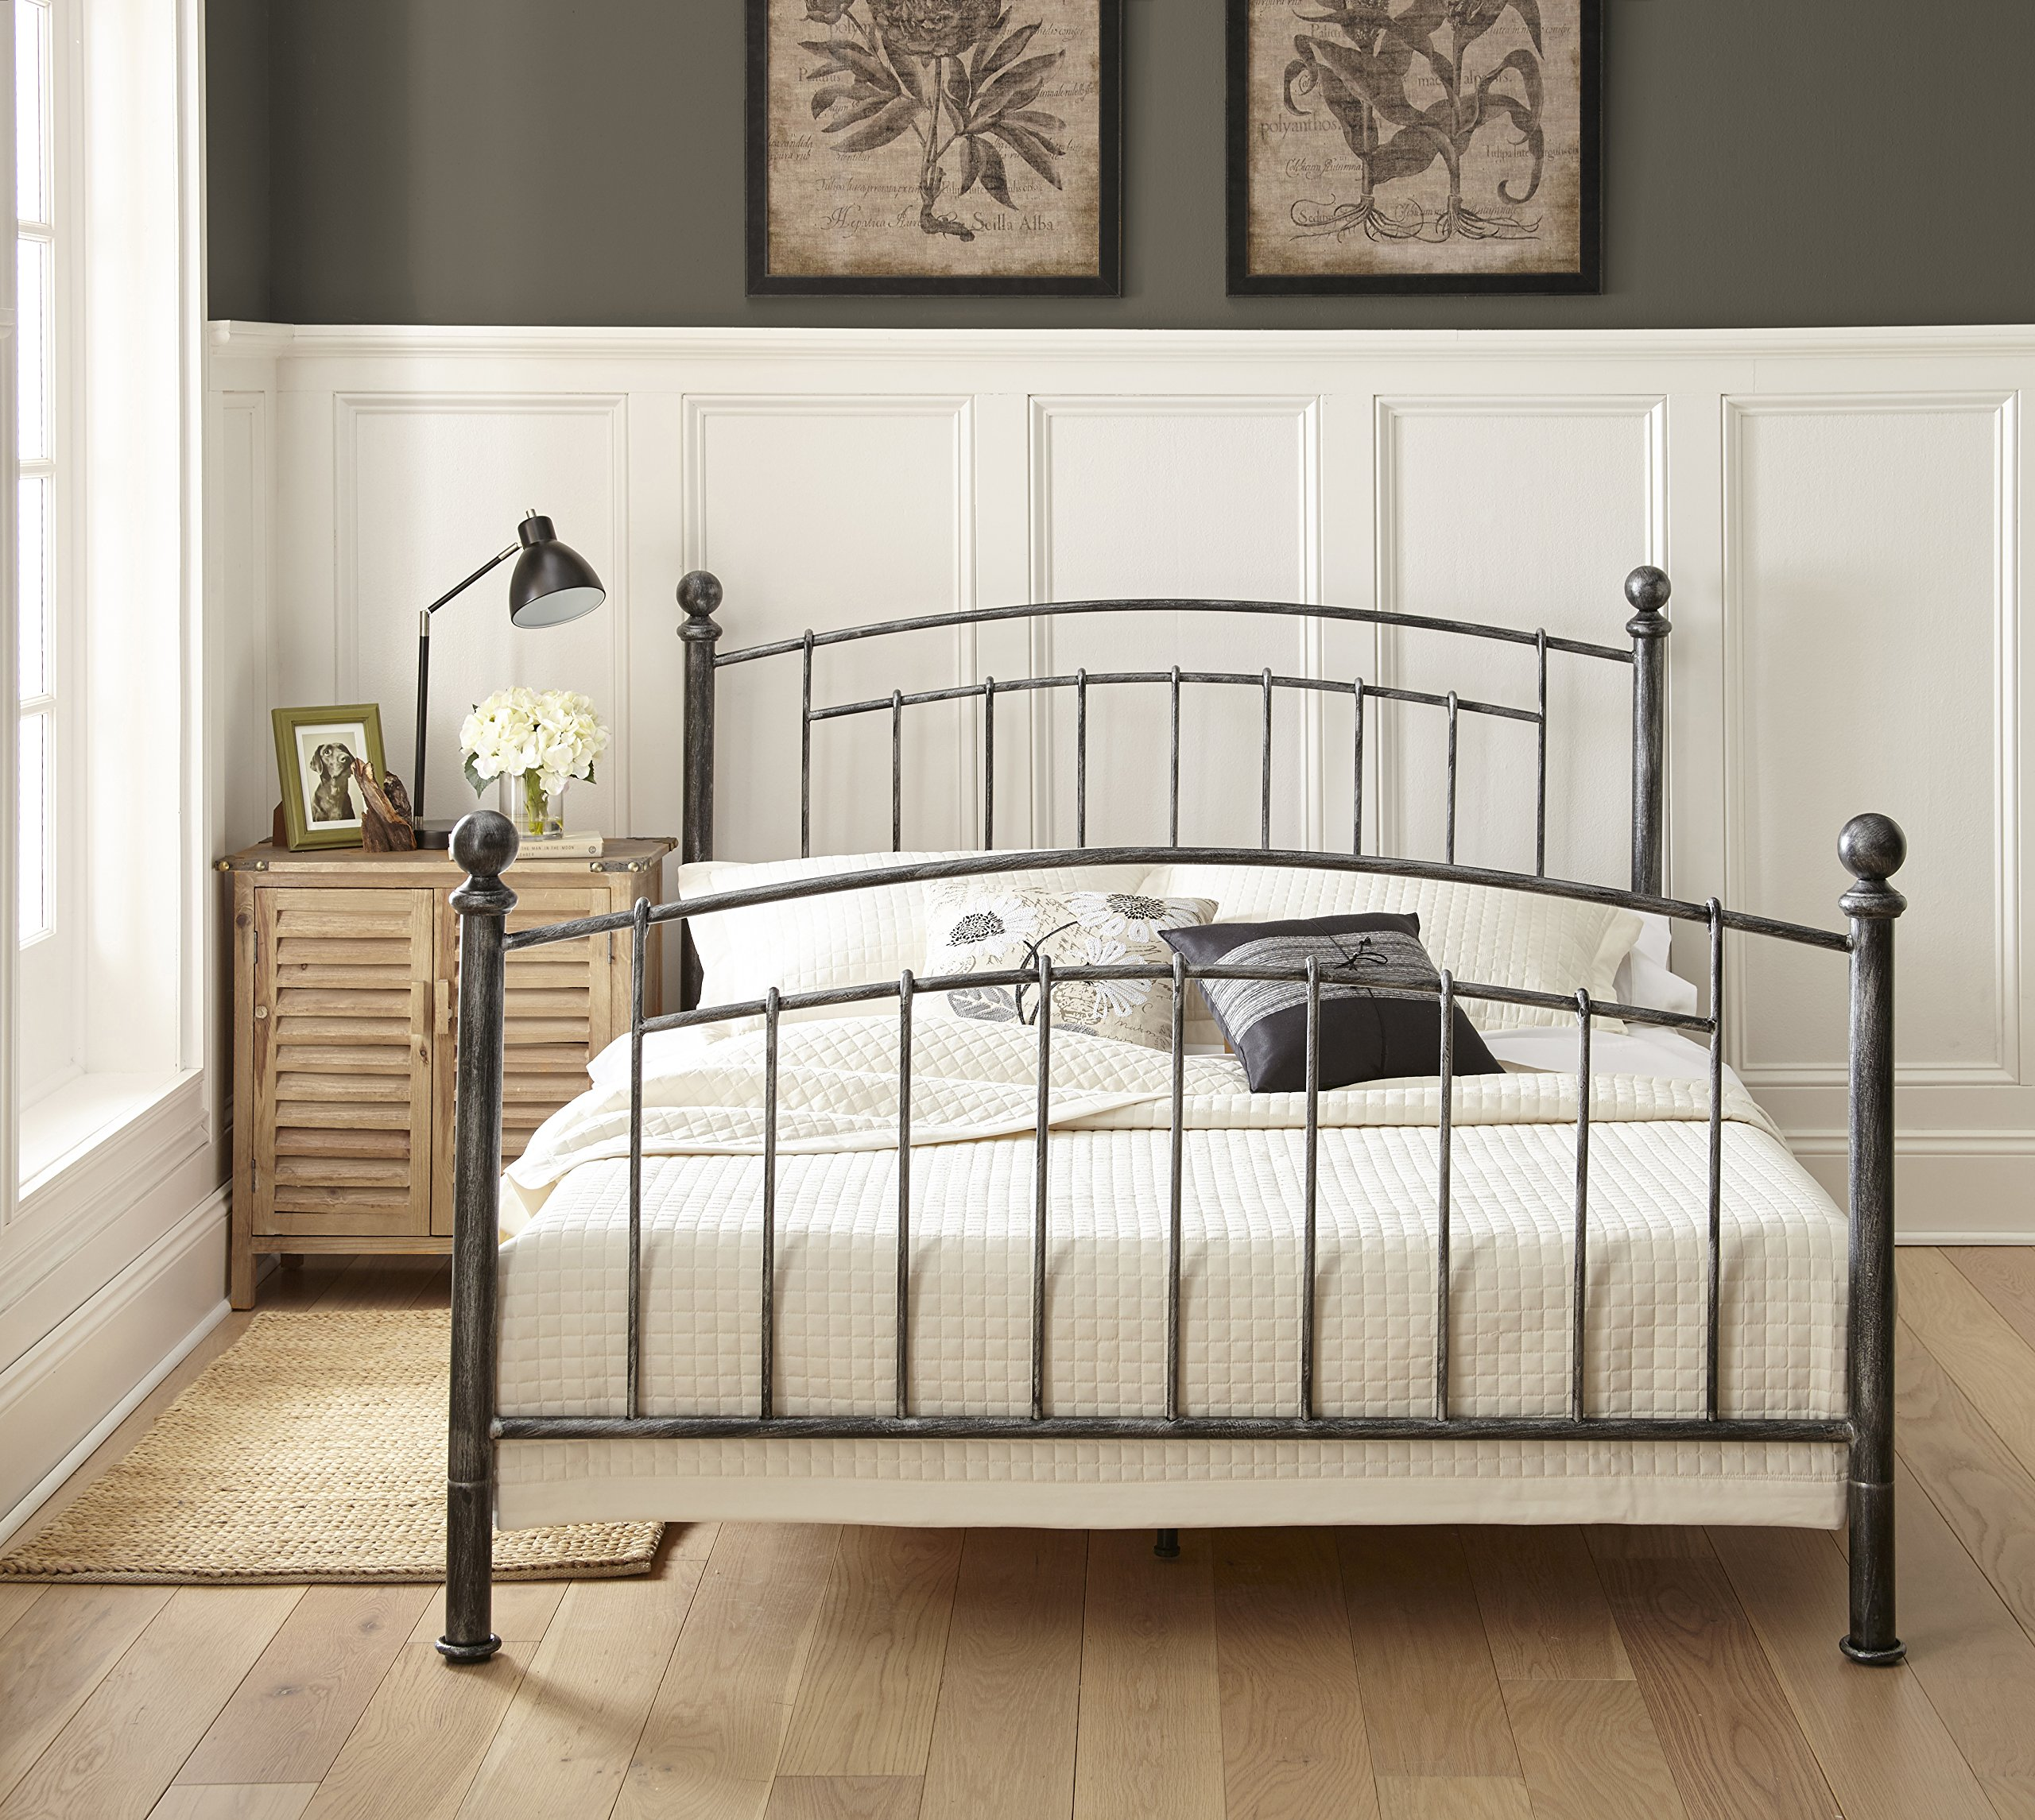 Flex Form Chandler Metal Platform Bed Frame / Mattress Foundation with Headboard and Footboard, Queen by Flex Form (Image #2)